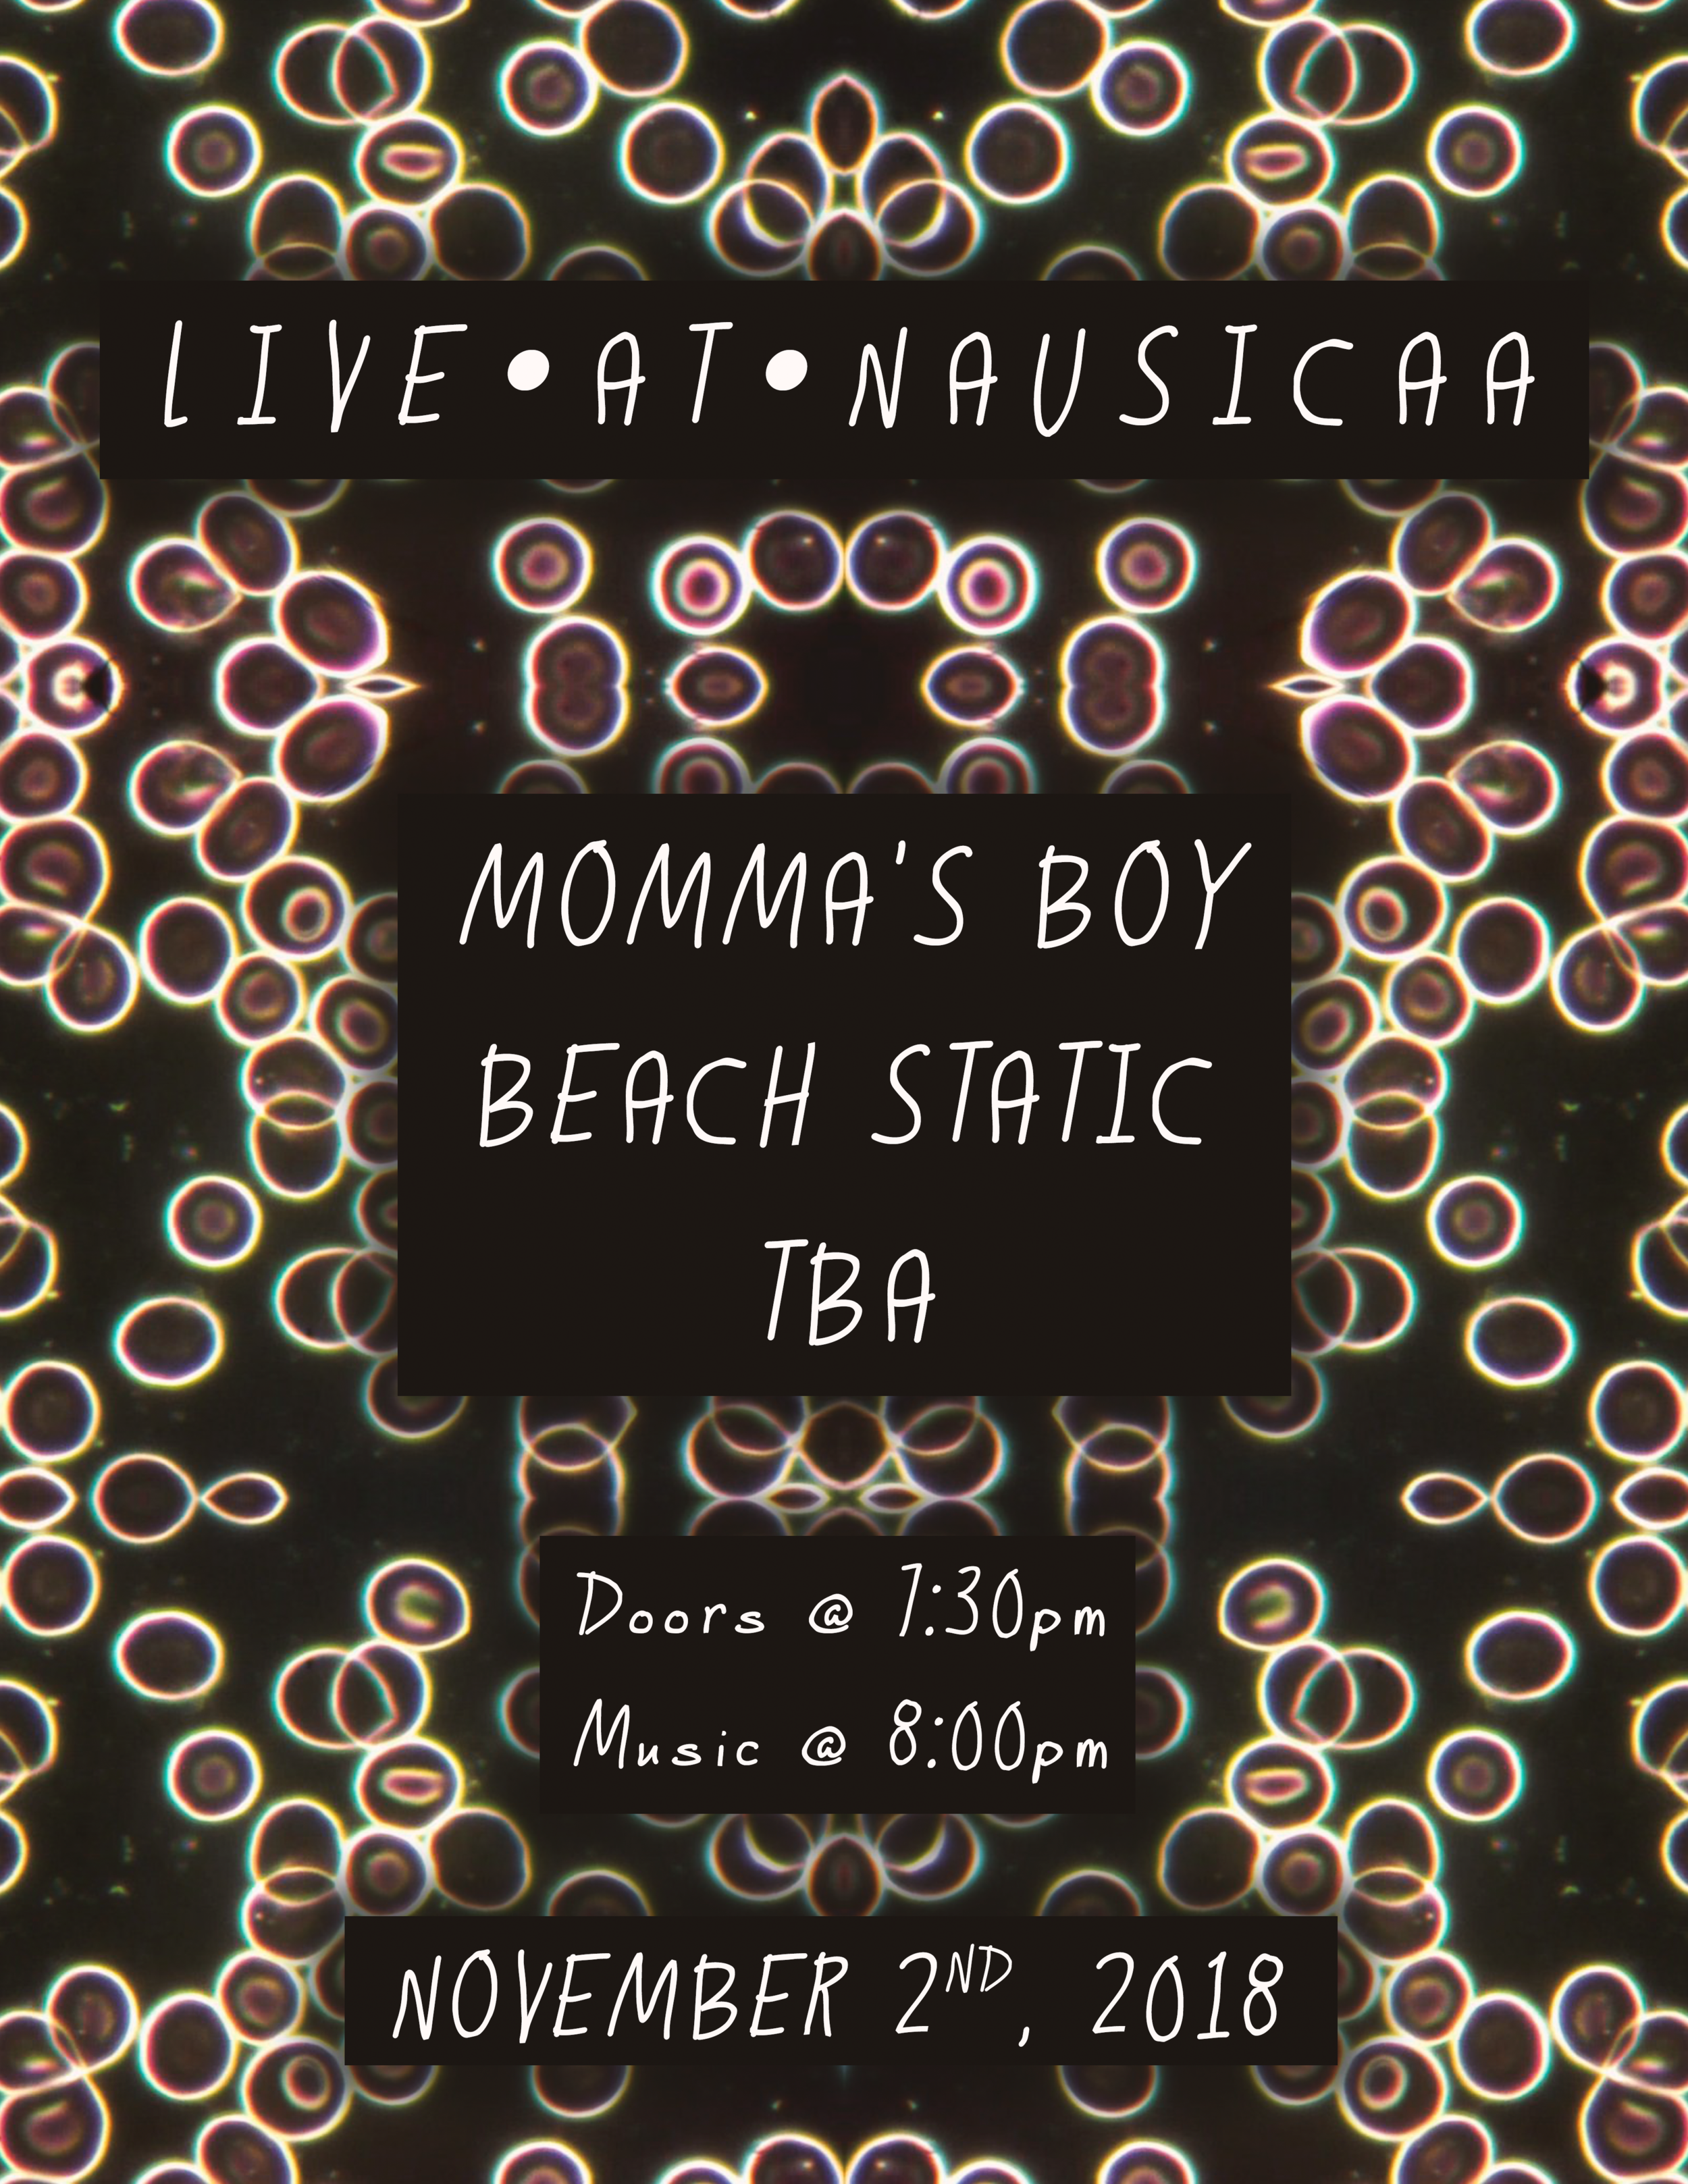 MOMMA'S BOY_BEACH STATIC_TBA_18_11_02 (smaller file size).png